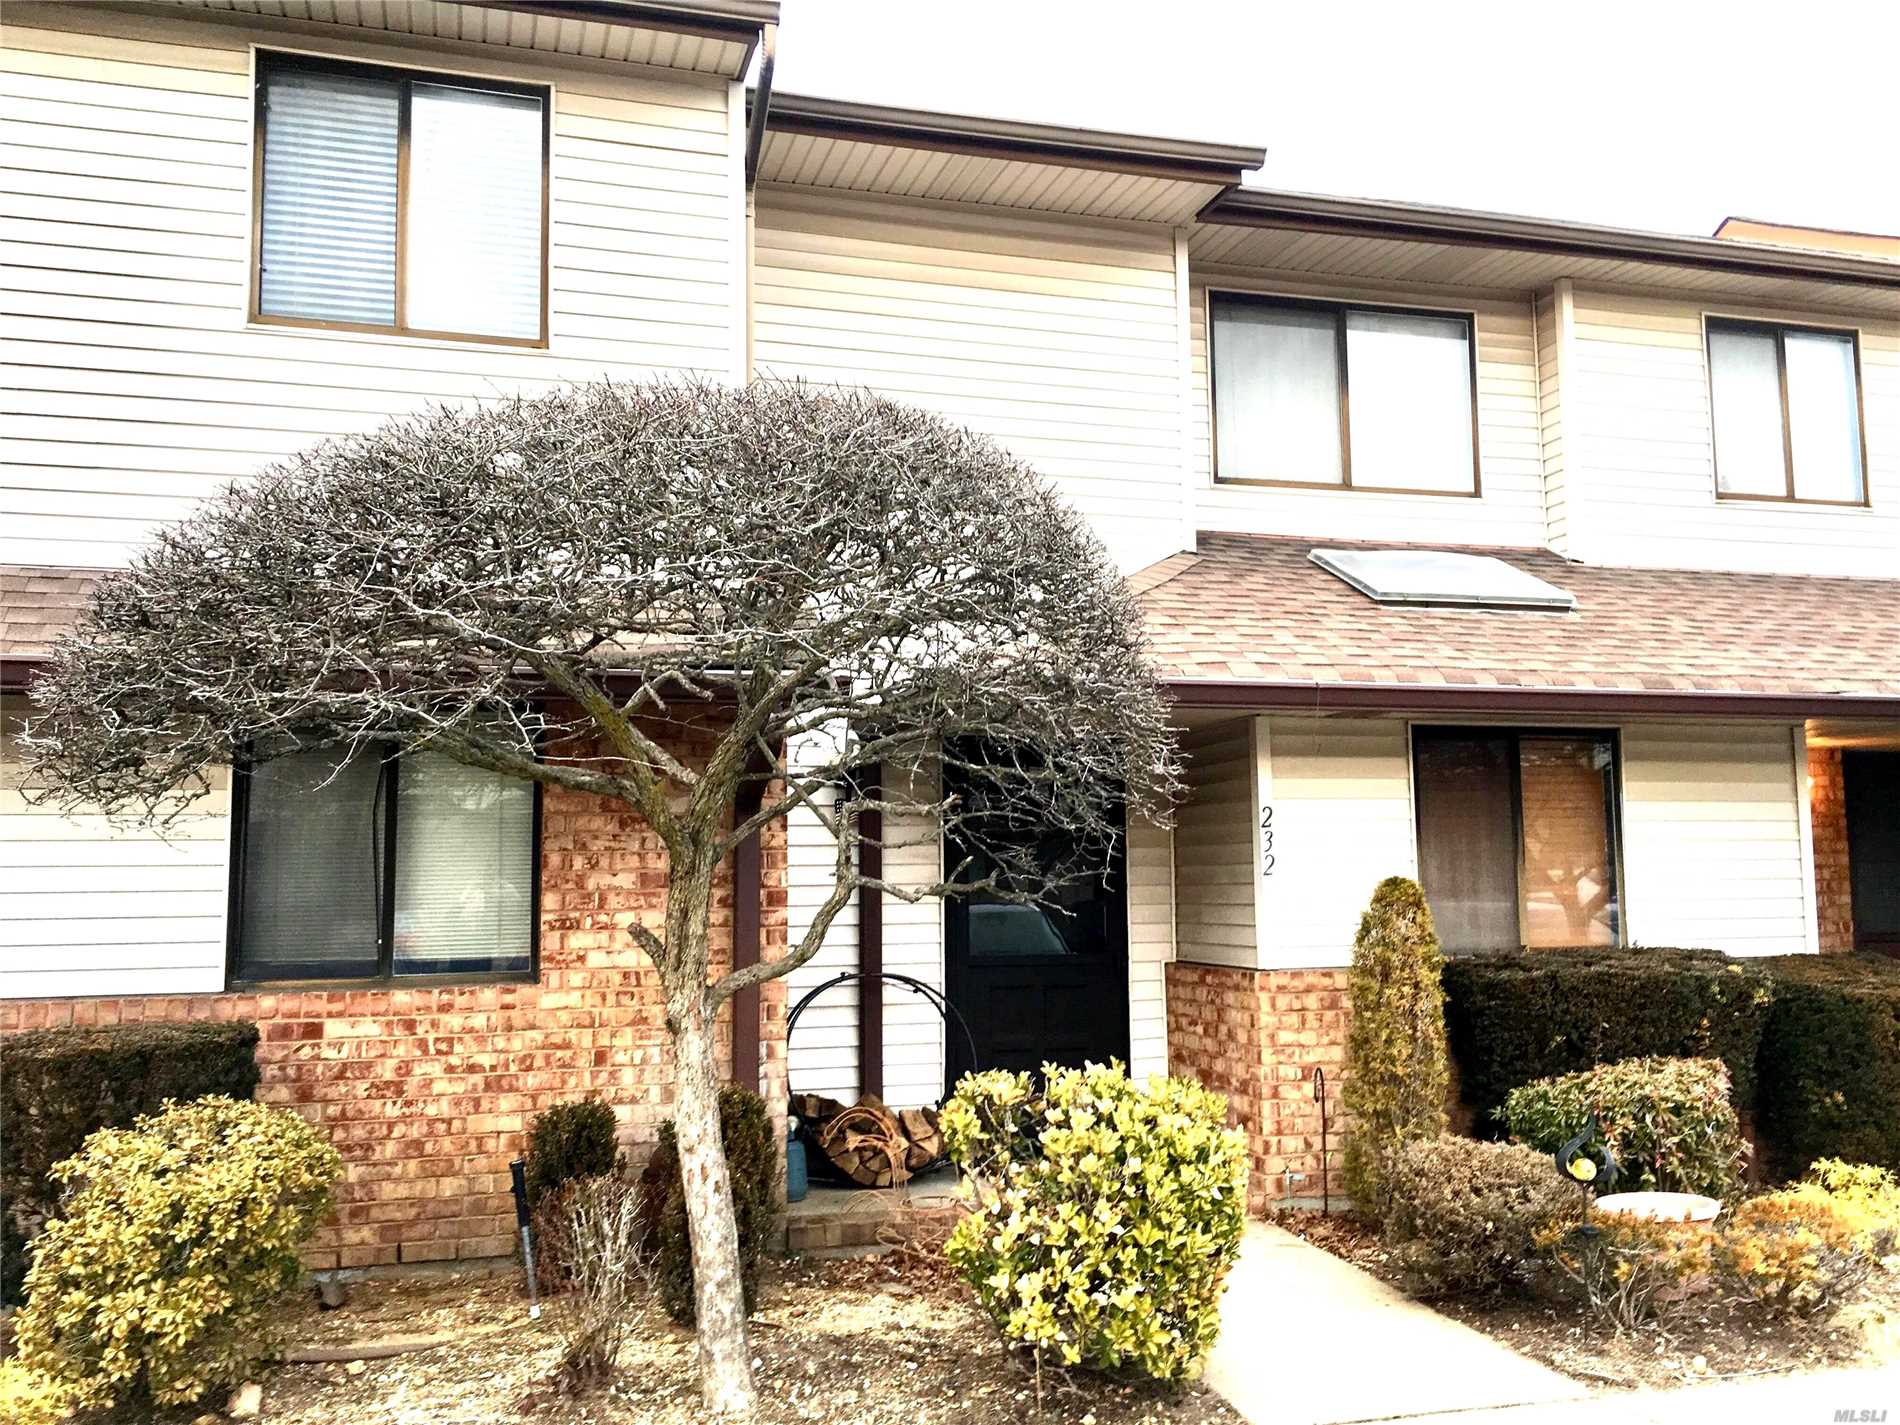 2 Bedroom Townhouse.Condo* 1.5 Baths* Pool, Tennis Courts*, Clubhouse*Ample Parking, One Designated Spot* Gated Only On Wantagh Ave* Walk To All Shopping* 1/4 Mile To Parkway* 20% Down (Pre-Approval Needed) Clubhouse,